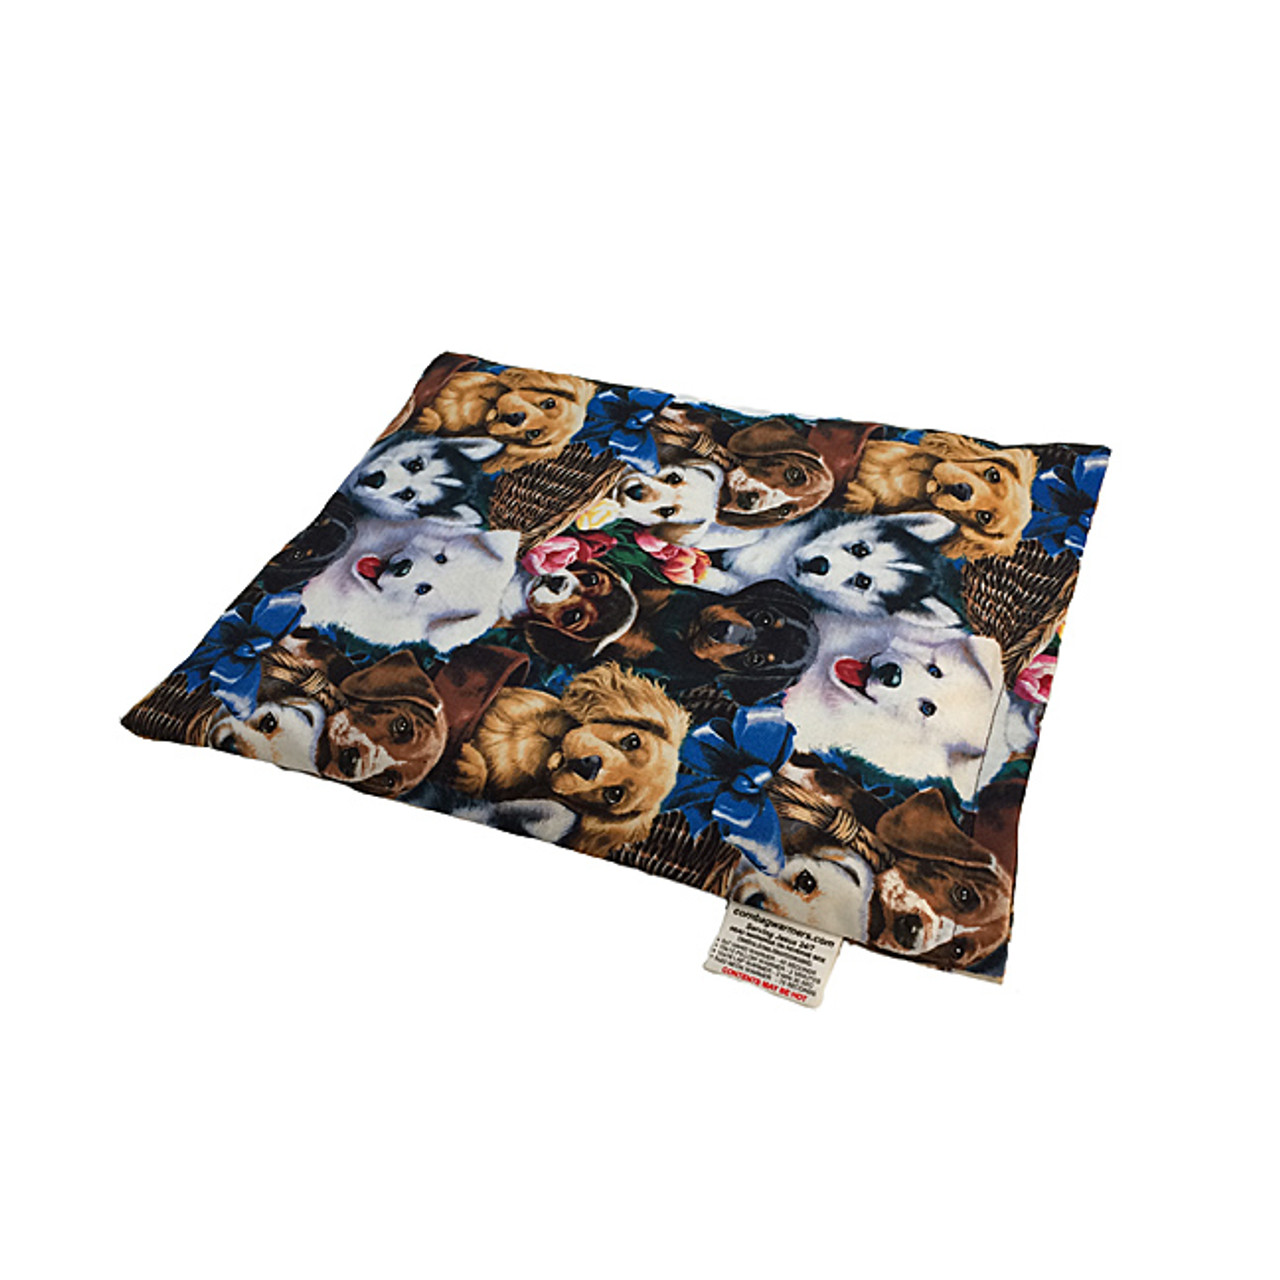 Puppy Luv Pillow Warmer Microwave Heating Pad